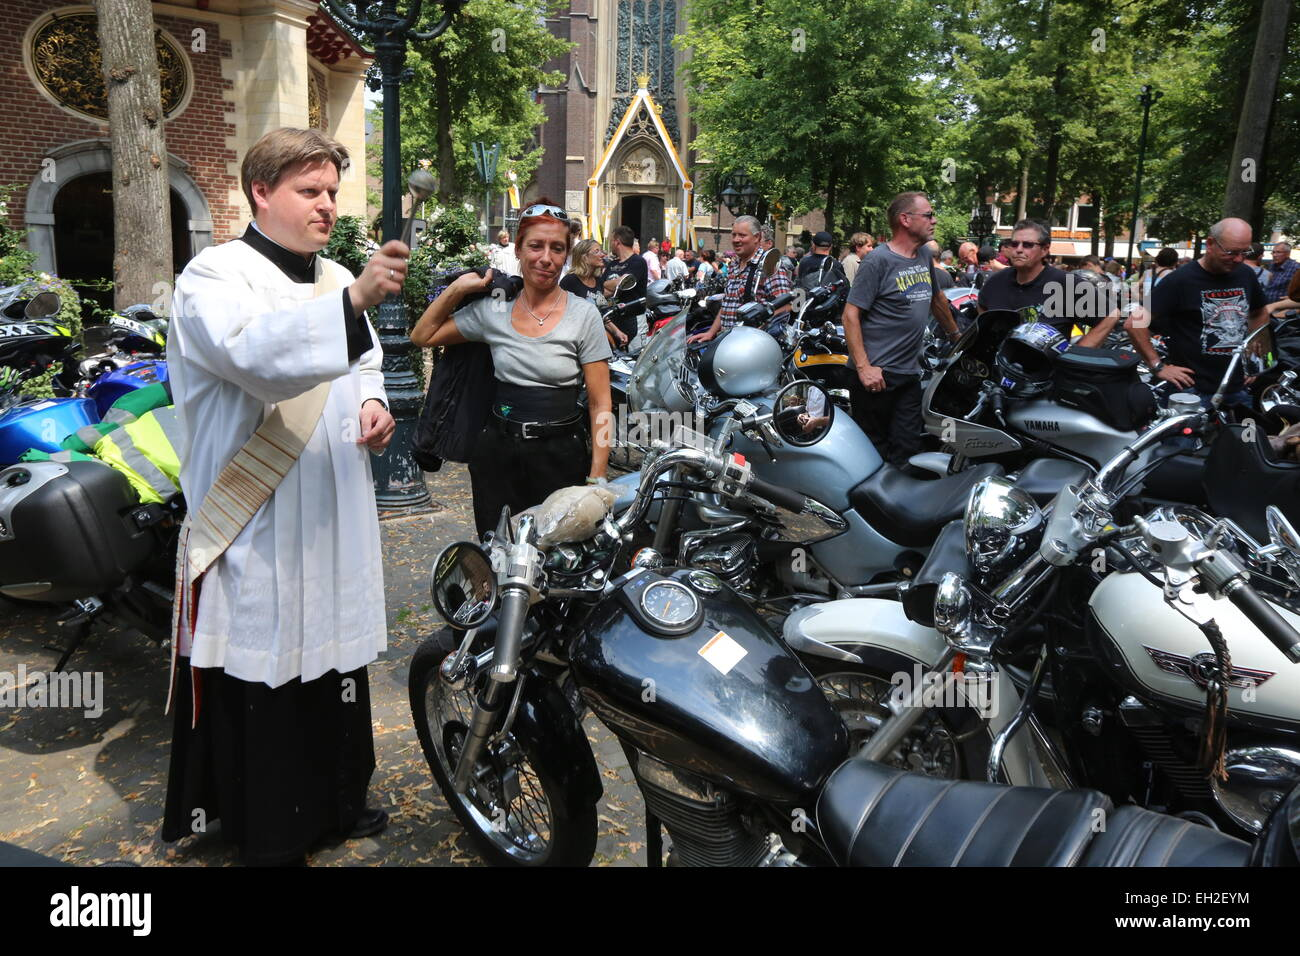 A priest blesses motorcycles and their riders during a motorcycle pilgrimage in front of the Chapel of Grace, Kevelaer, - Stock Image